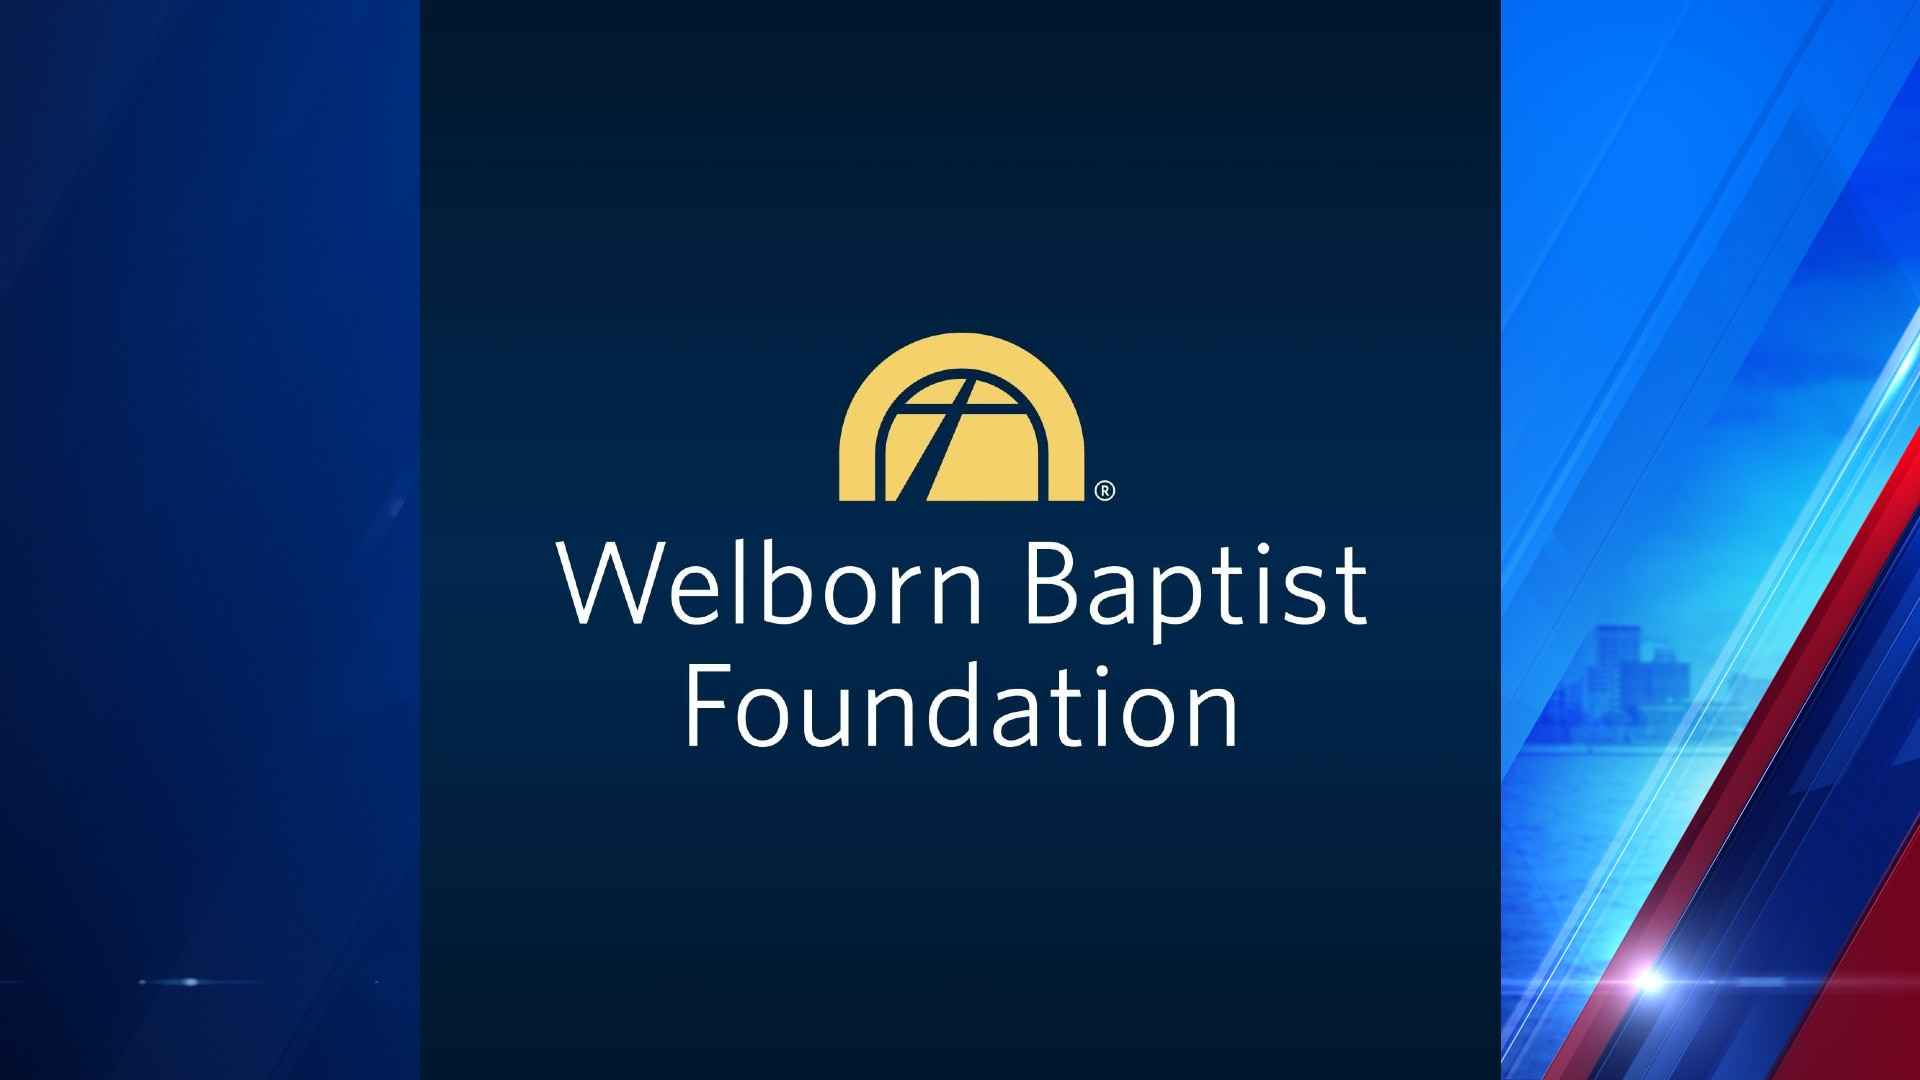 Welborn Baptist Foundation